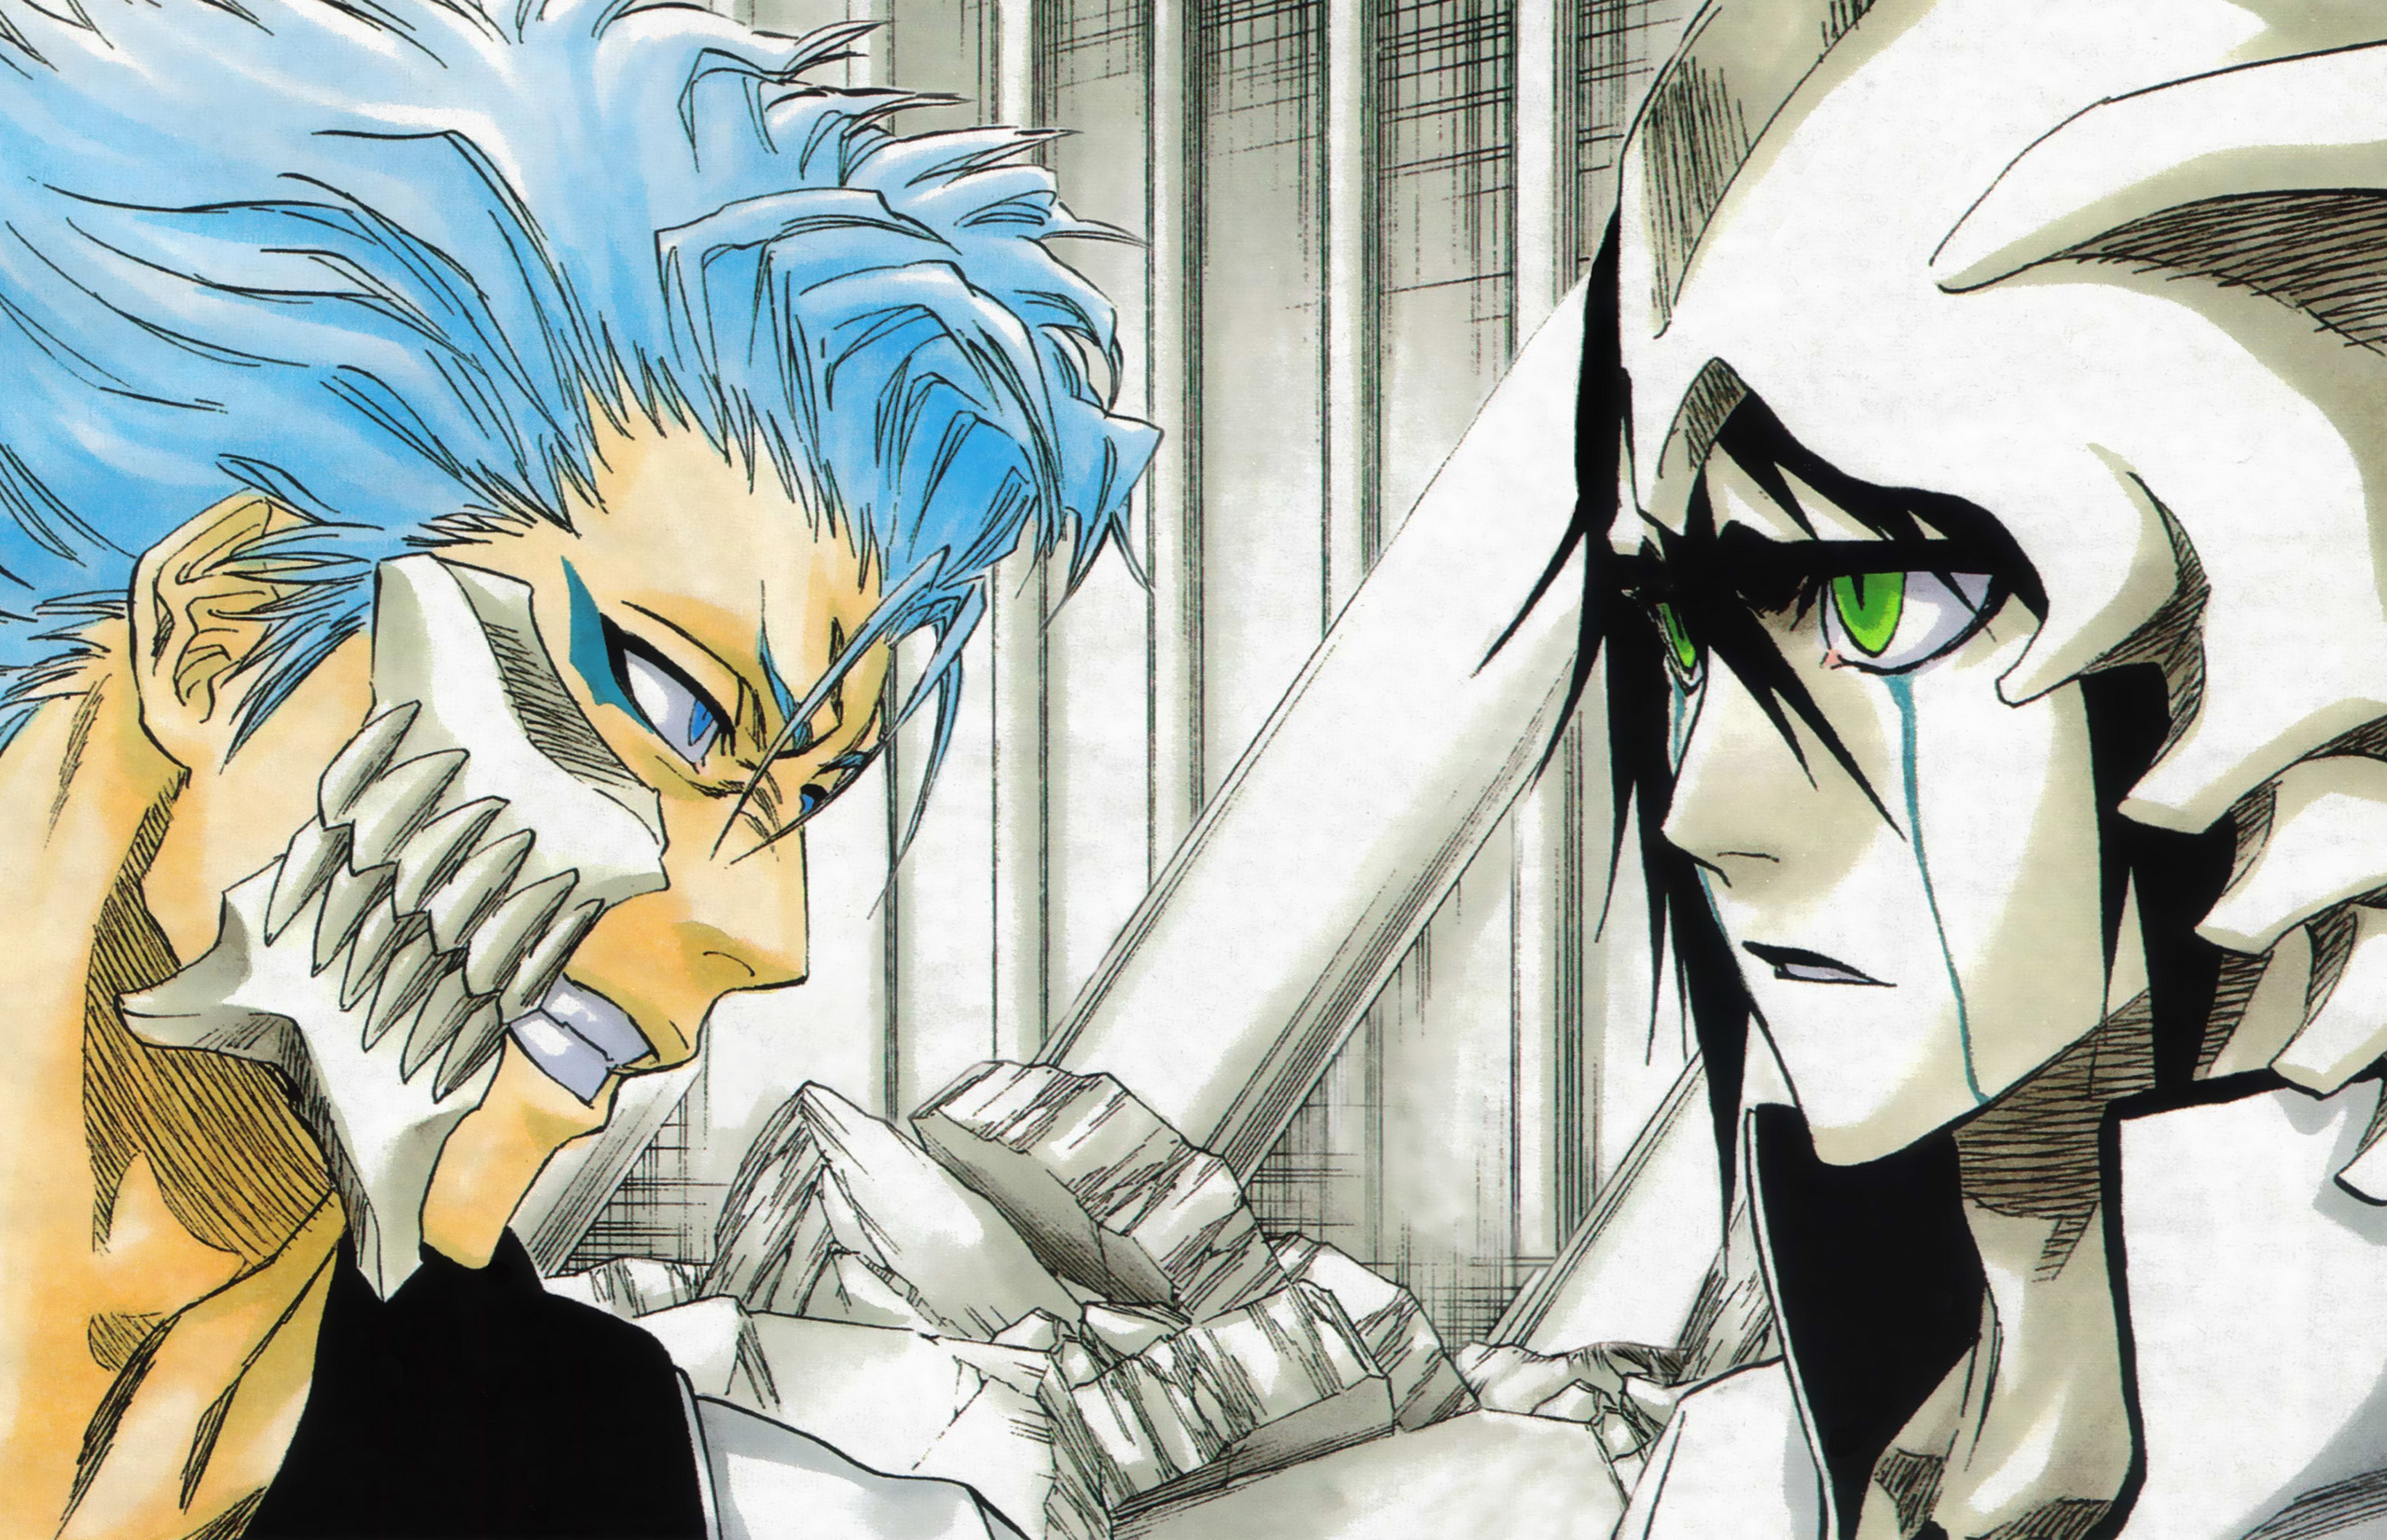 bleach anime images grimmjow vs. ulquiorra hd wallpaper and